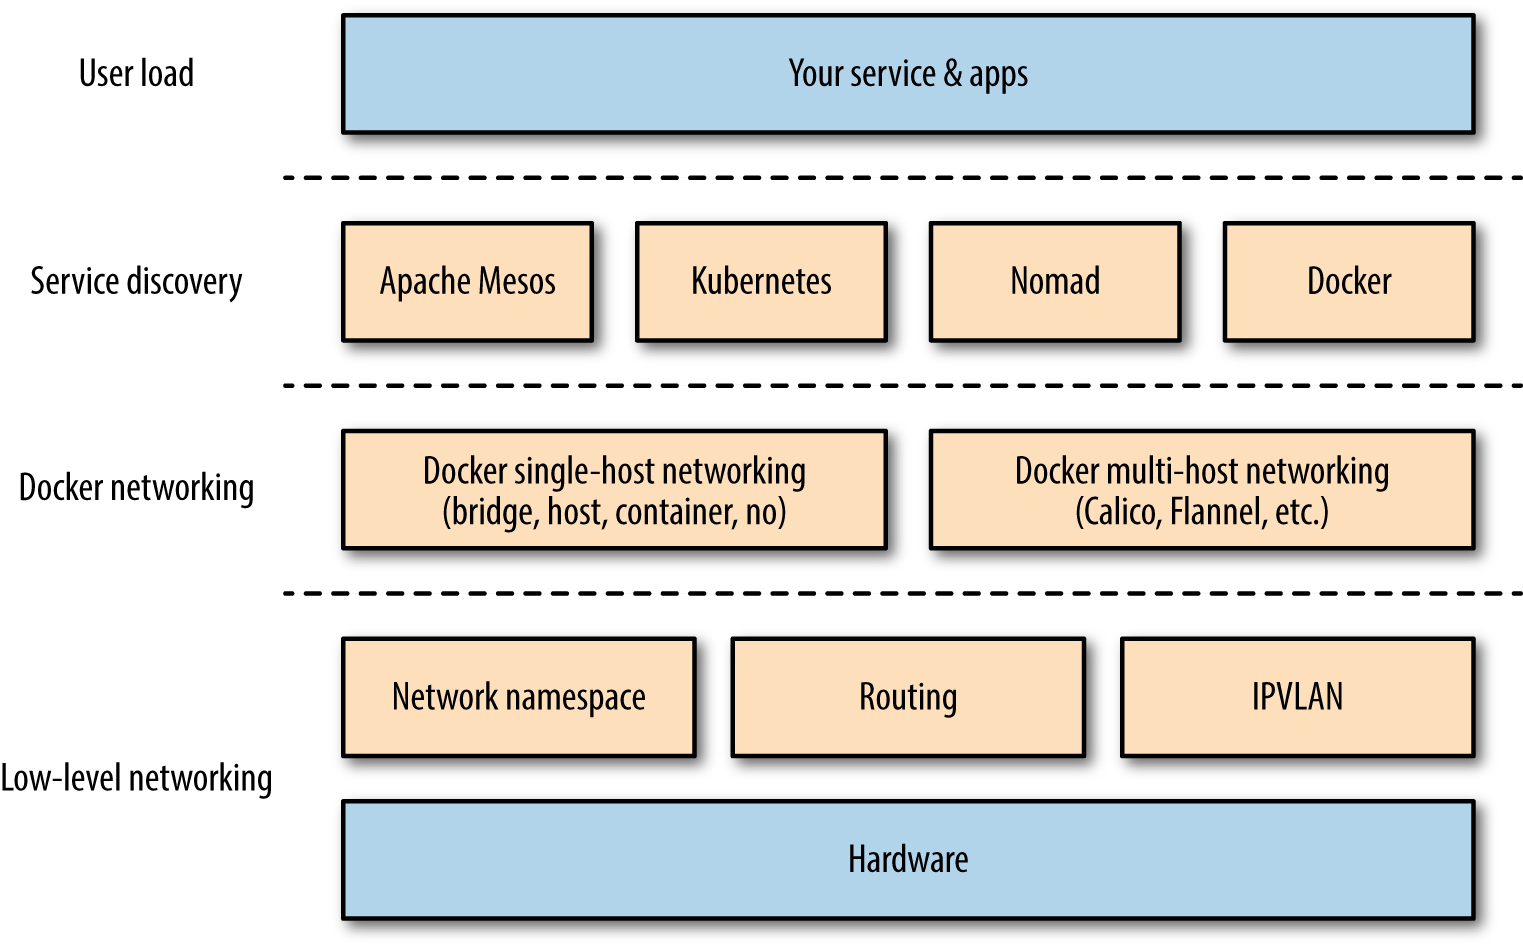 Docker networking and service discovery stack.